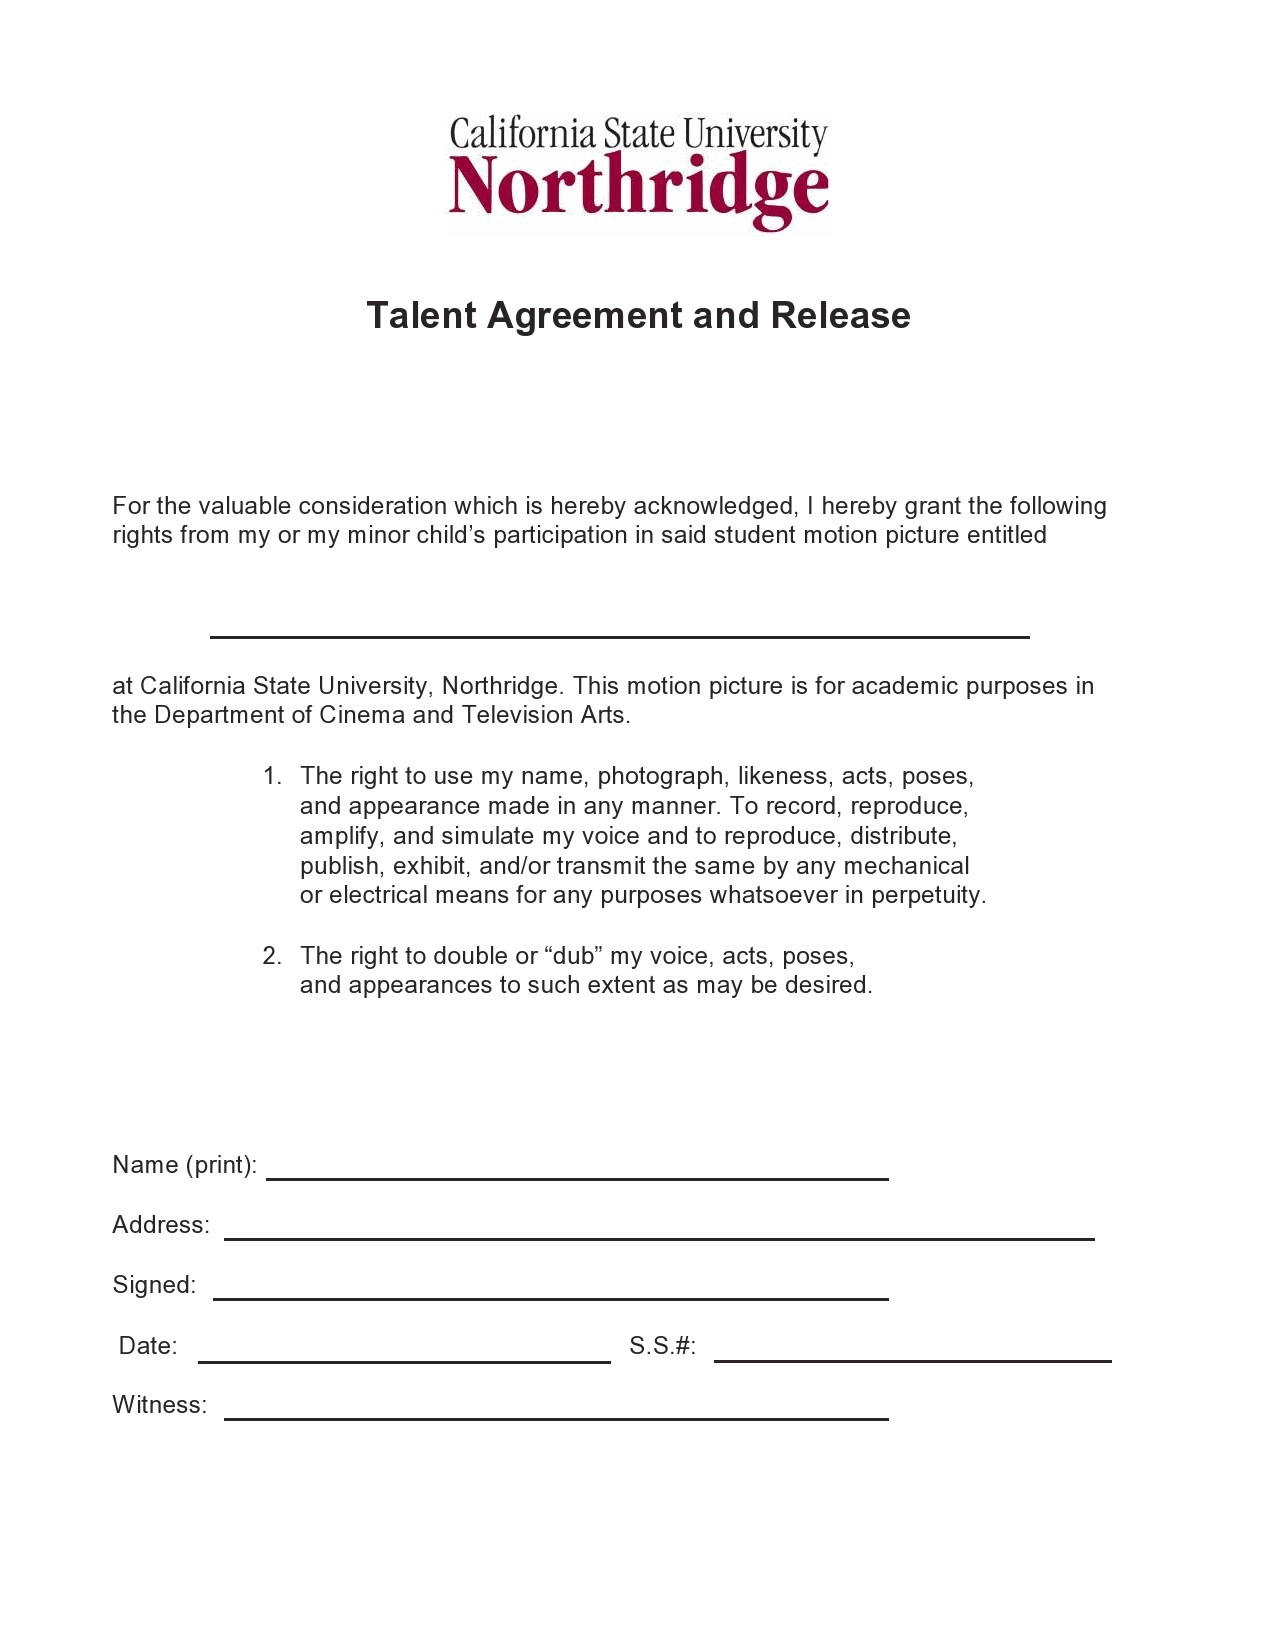 Free talent release form 33